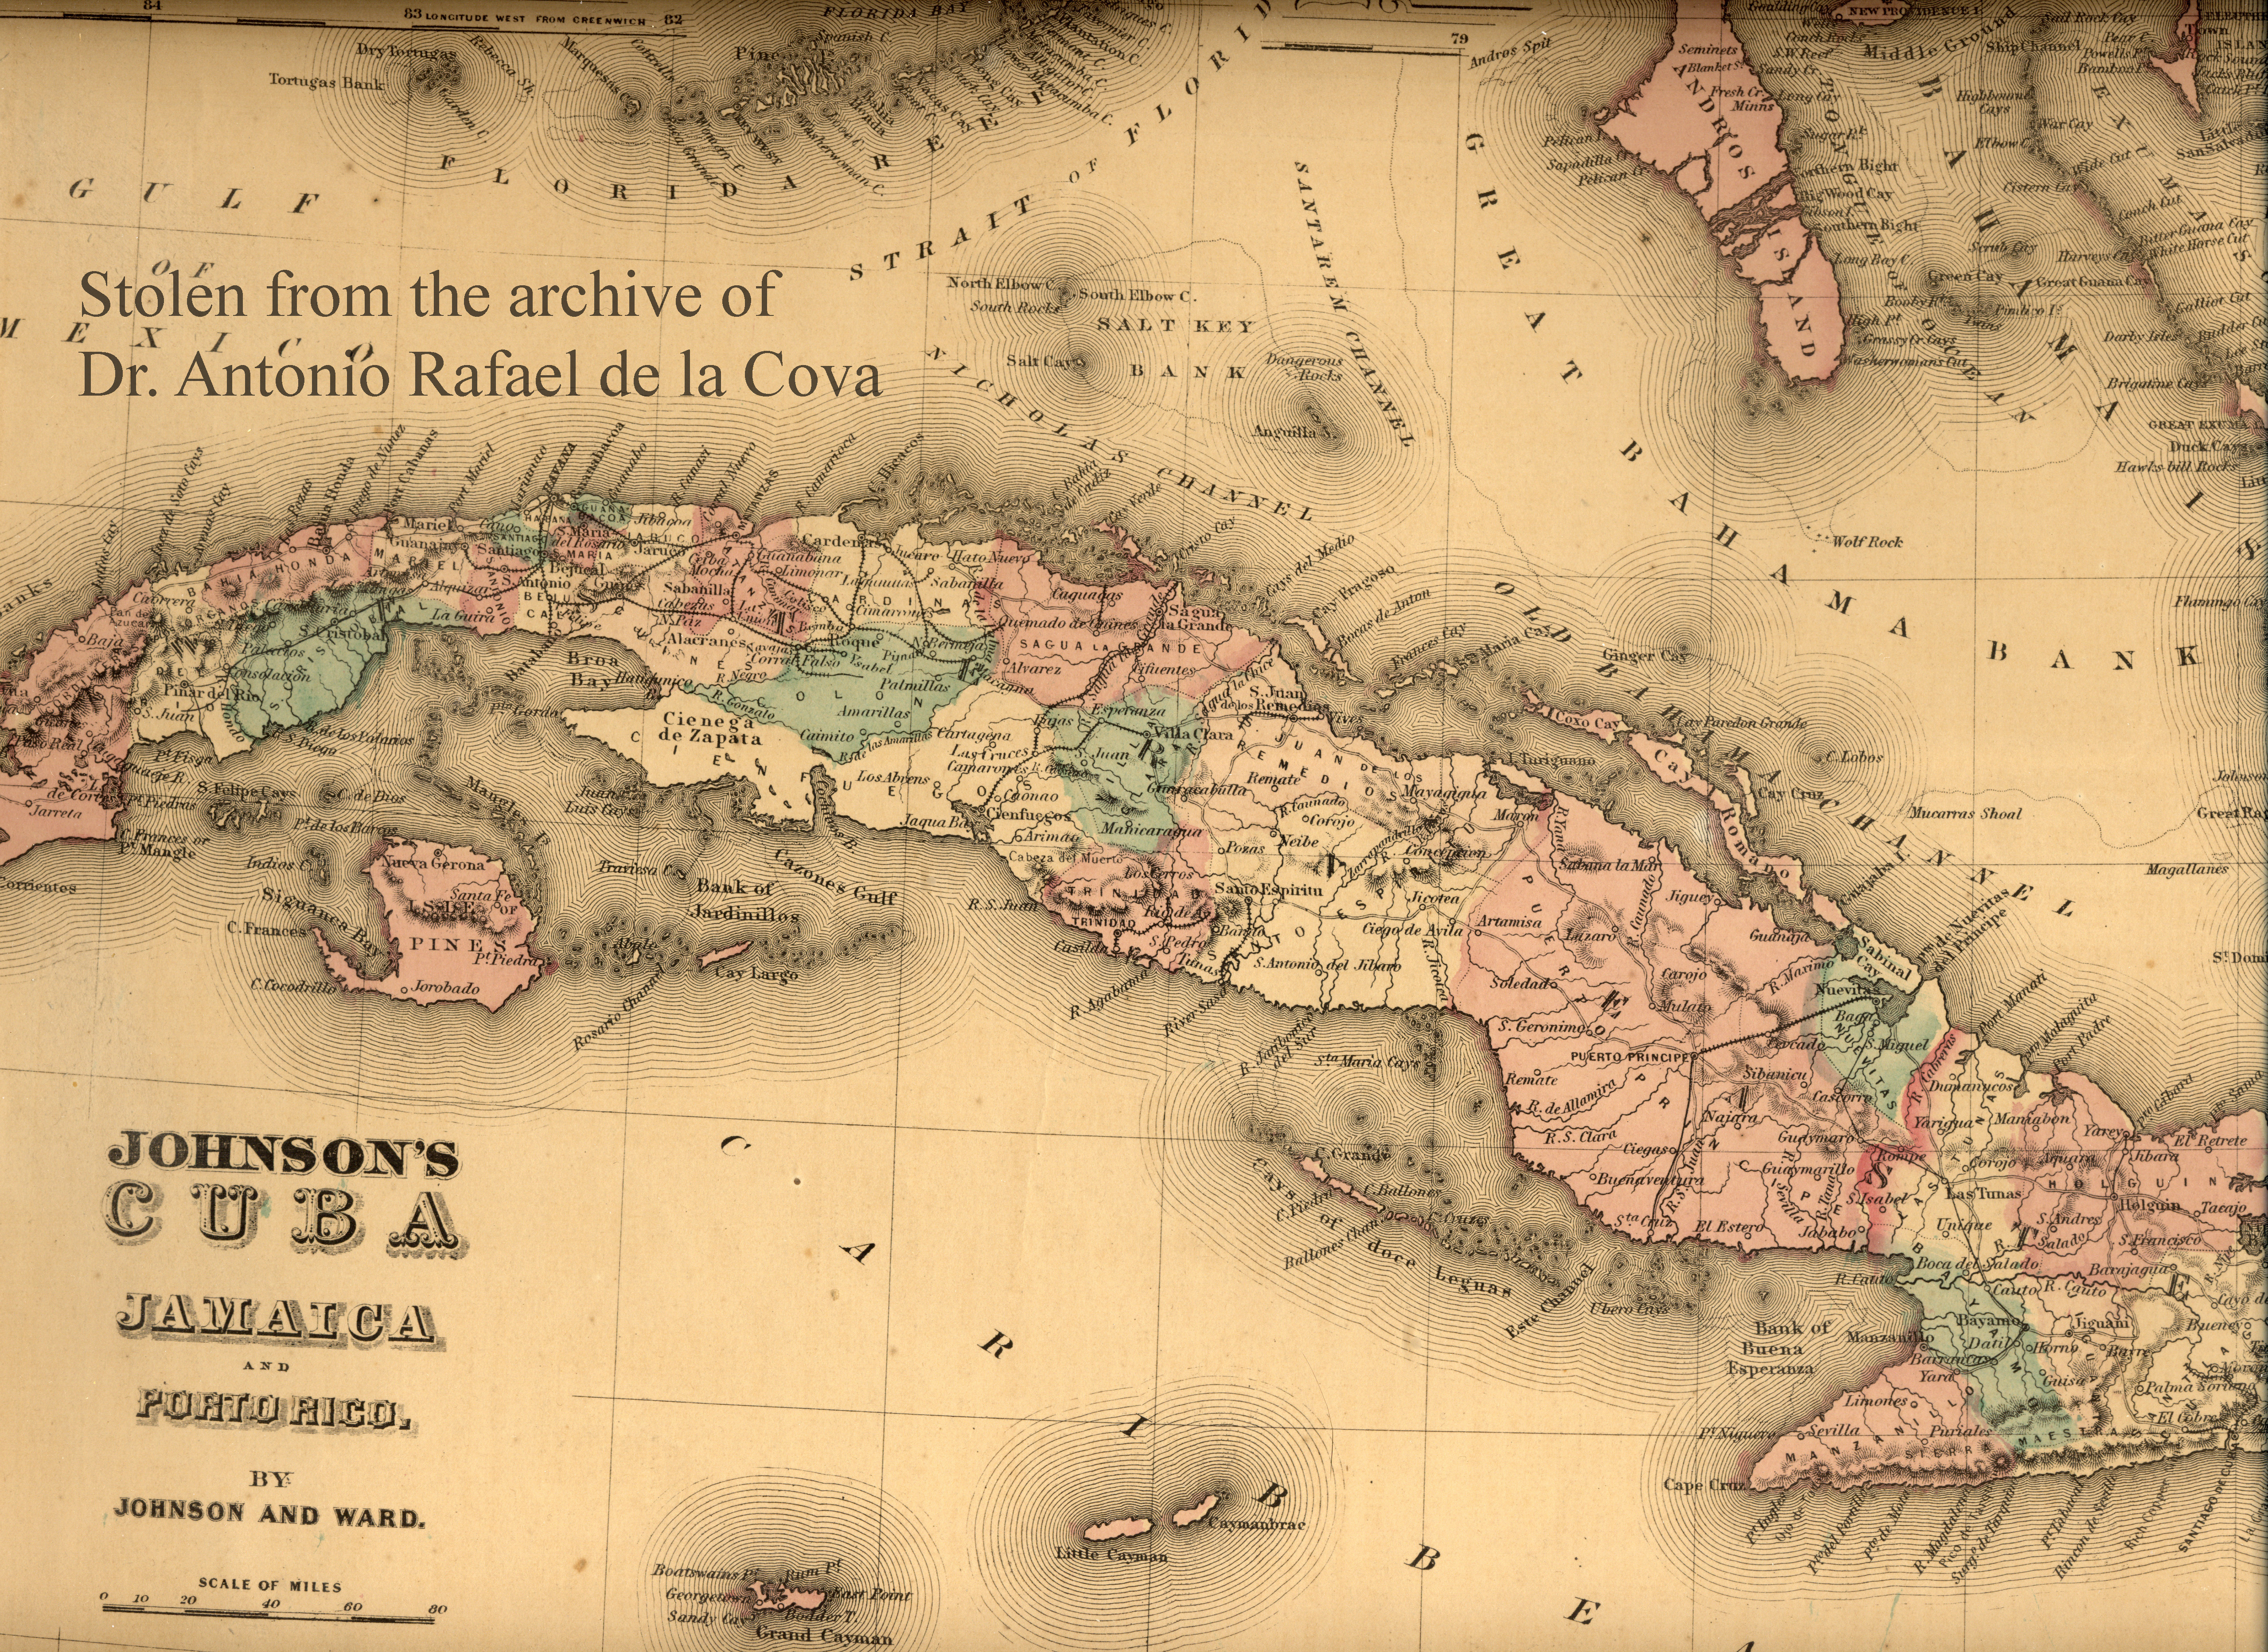 First map of cuba first map of hispaniola first map of florida cuba first map of cuba on first map of hispaniola first map of florida gumiabroncs Gallery